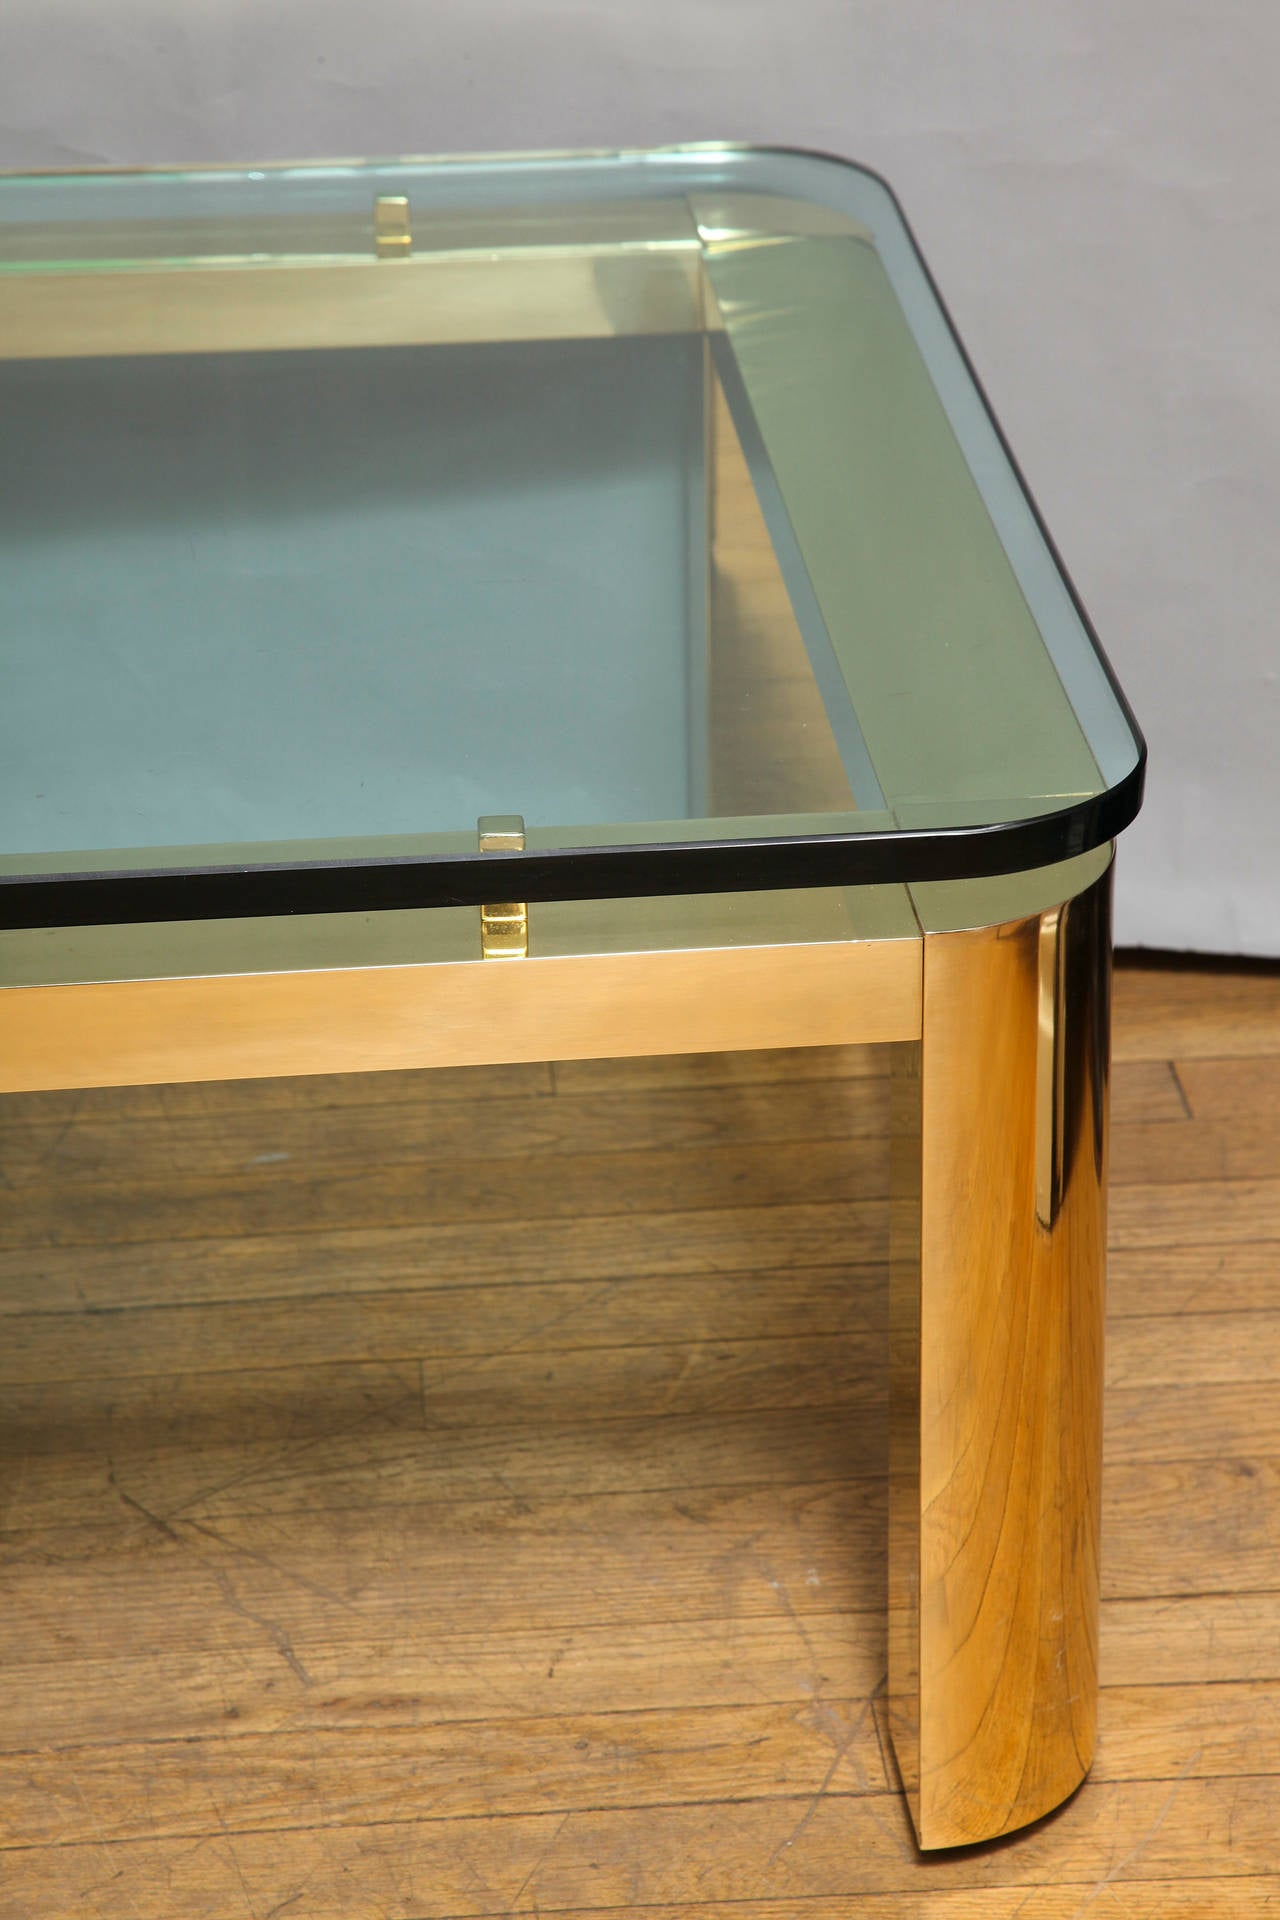 A Pace Collection Floating Glass Top Coffee Table For Sale at 1stdibs